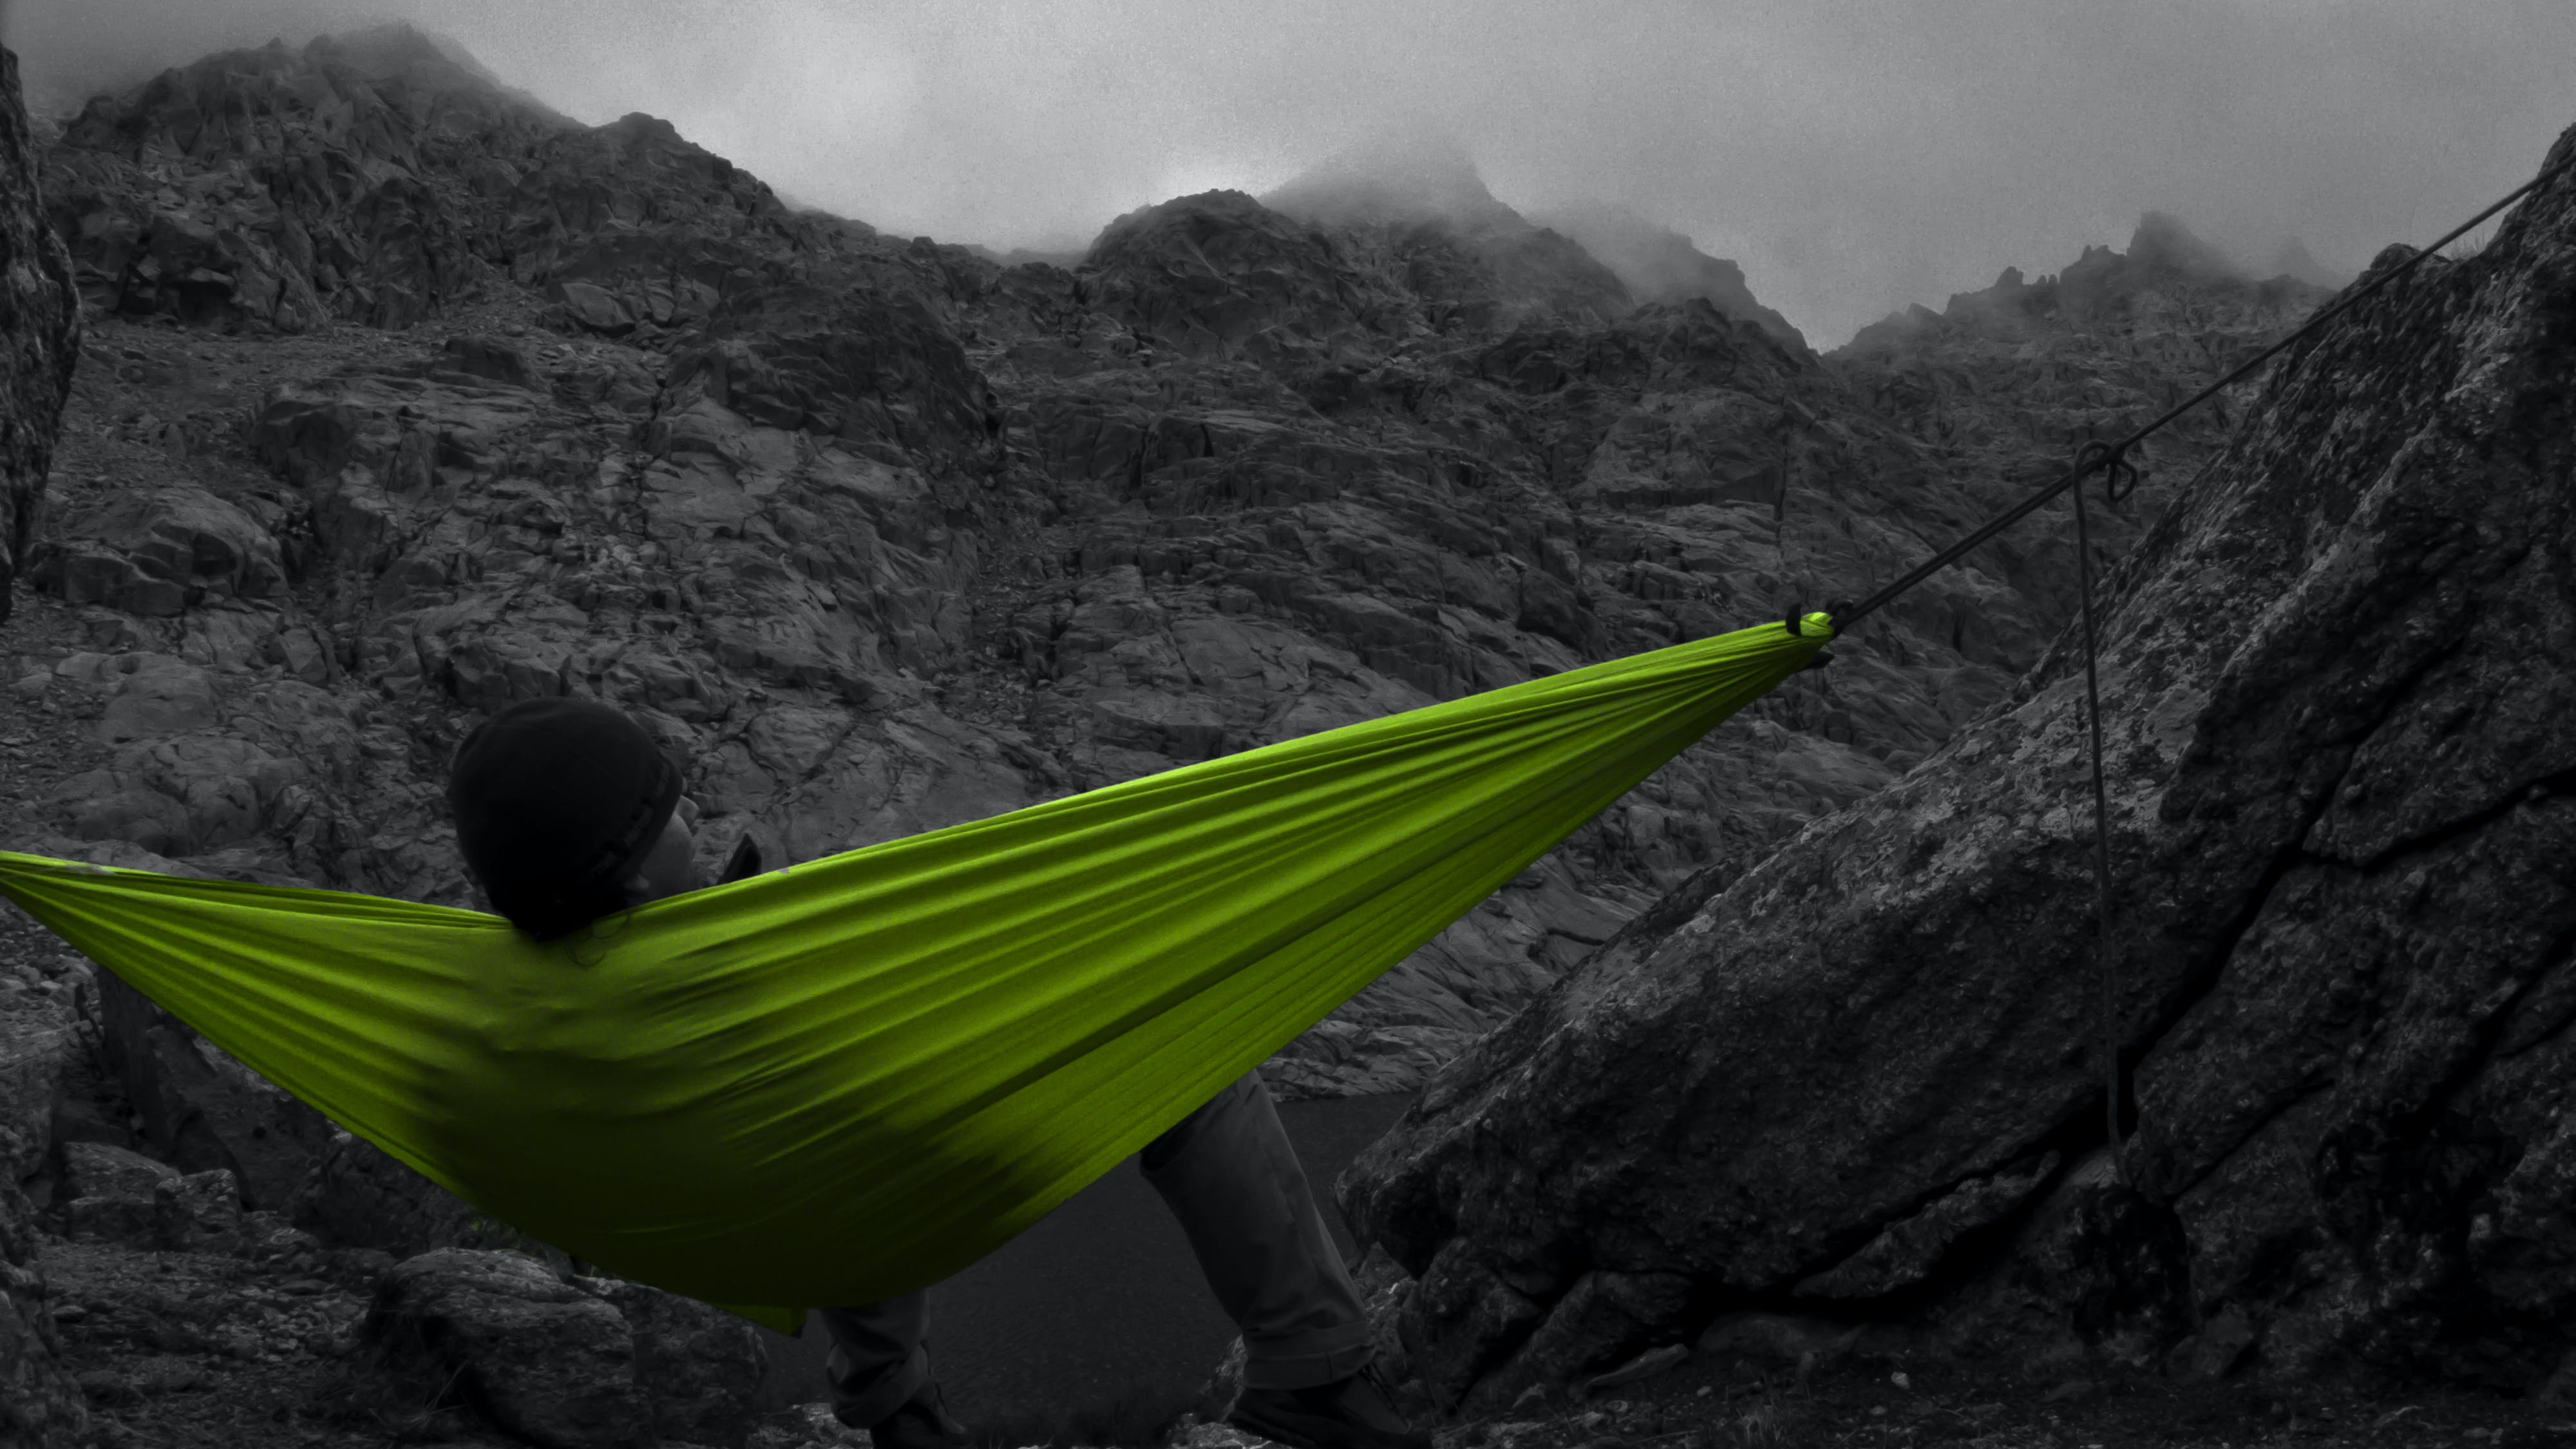 Selective Color of Green Canvas Hammock